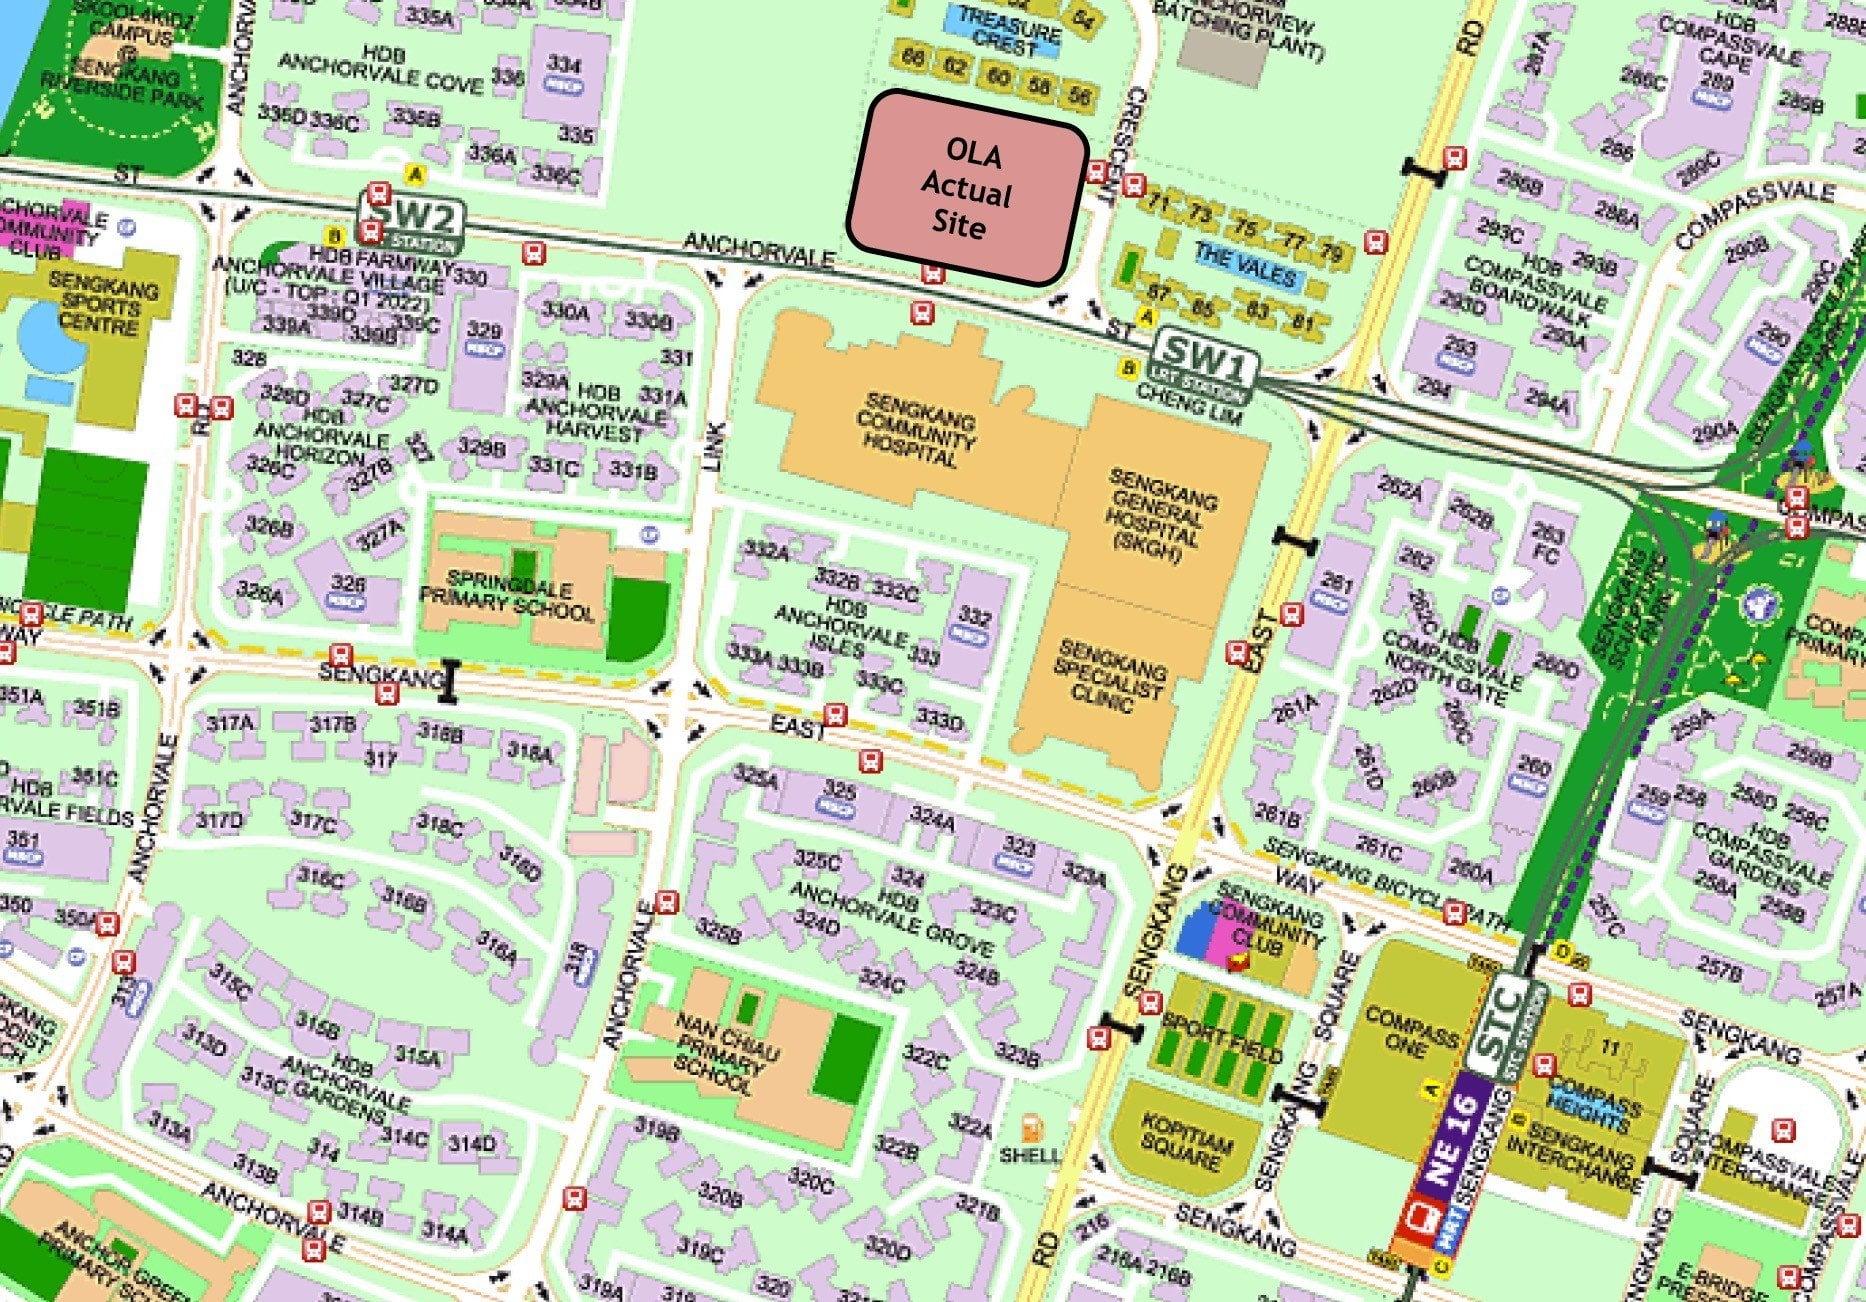 OLA Street Directory Map